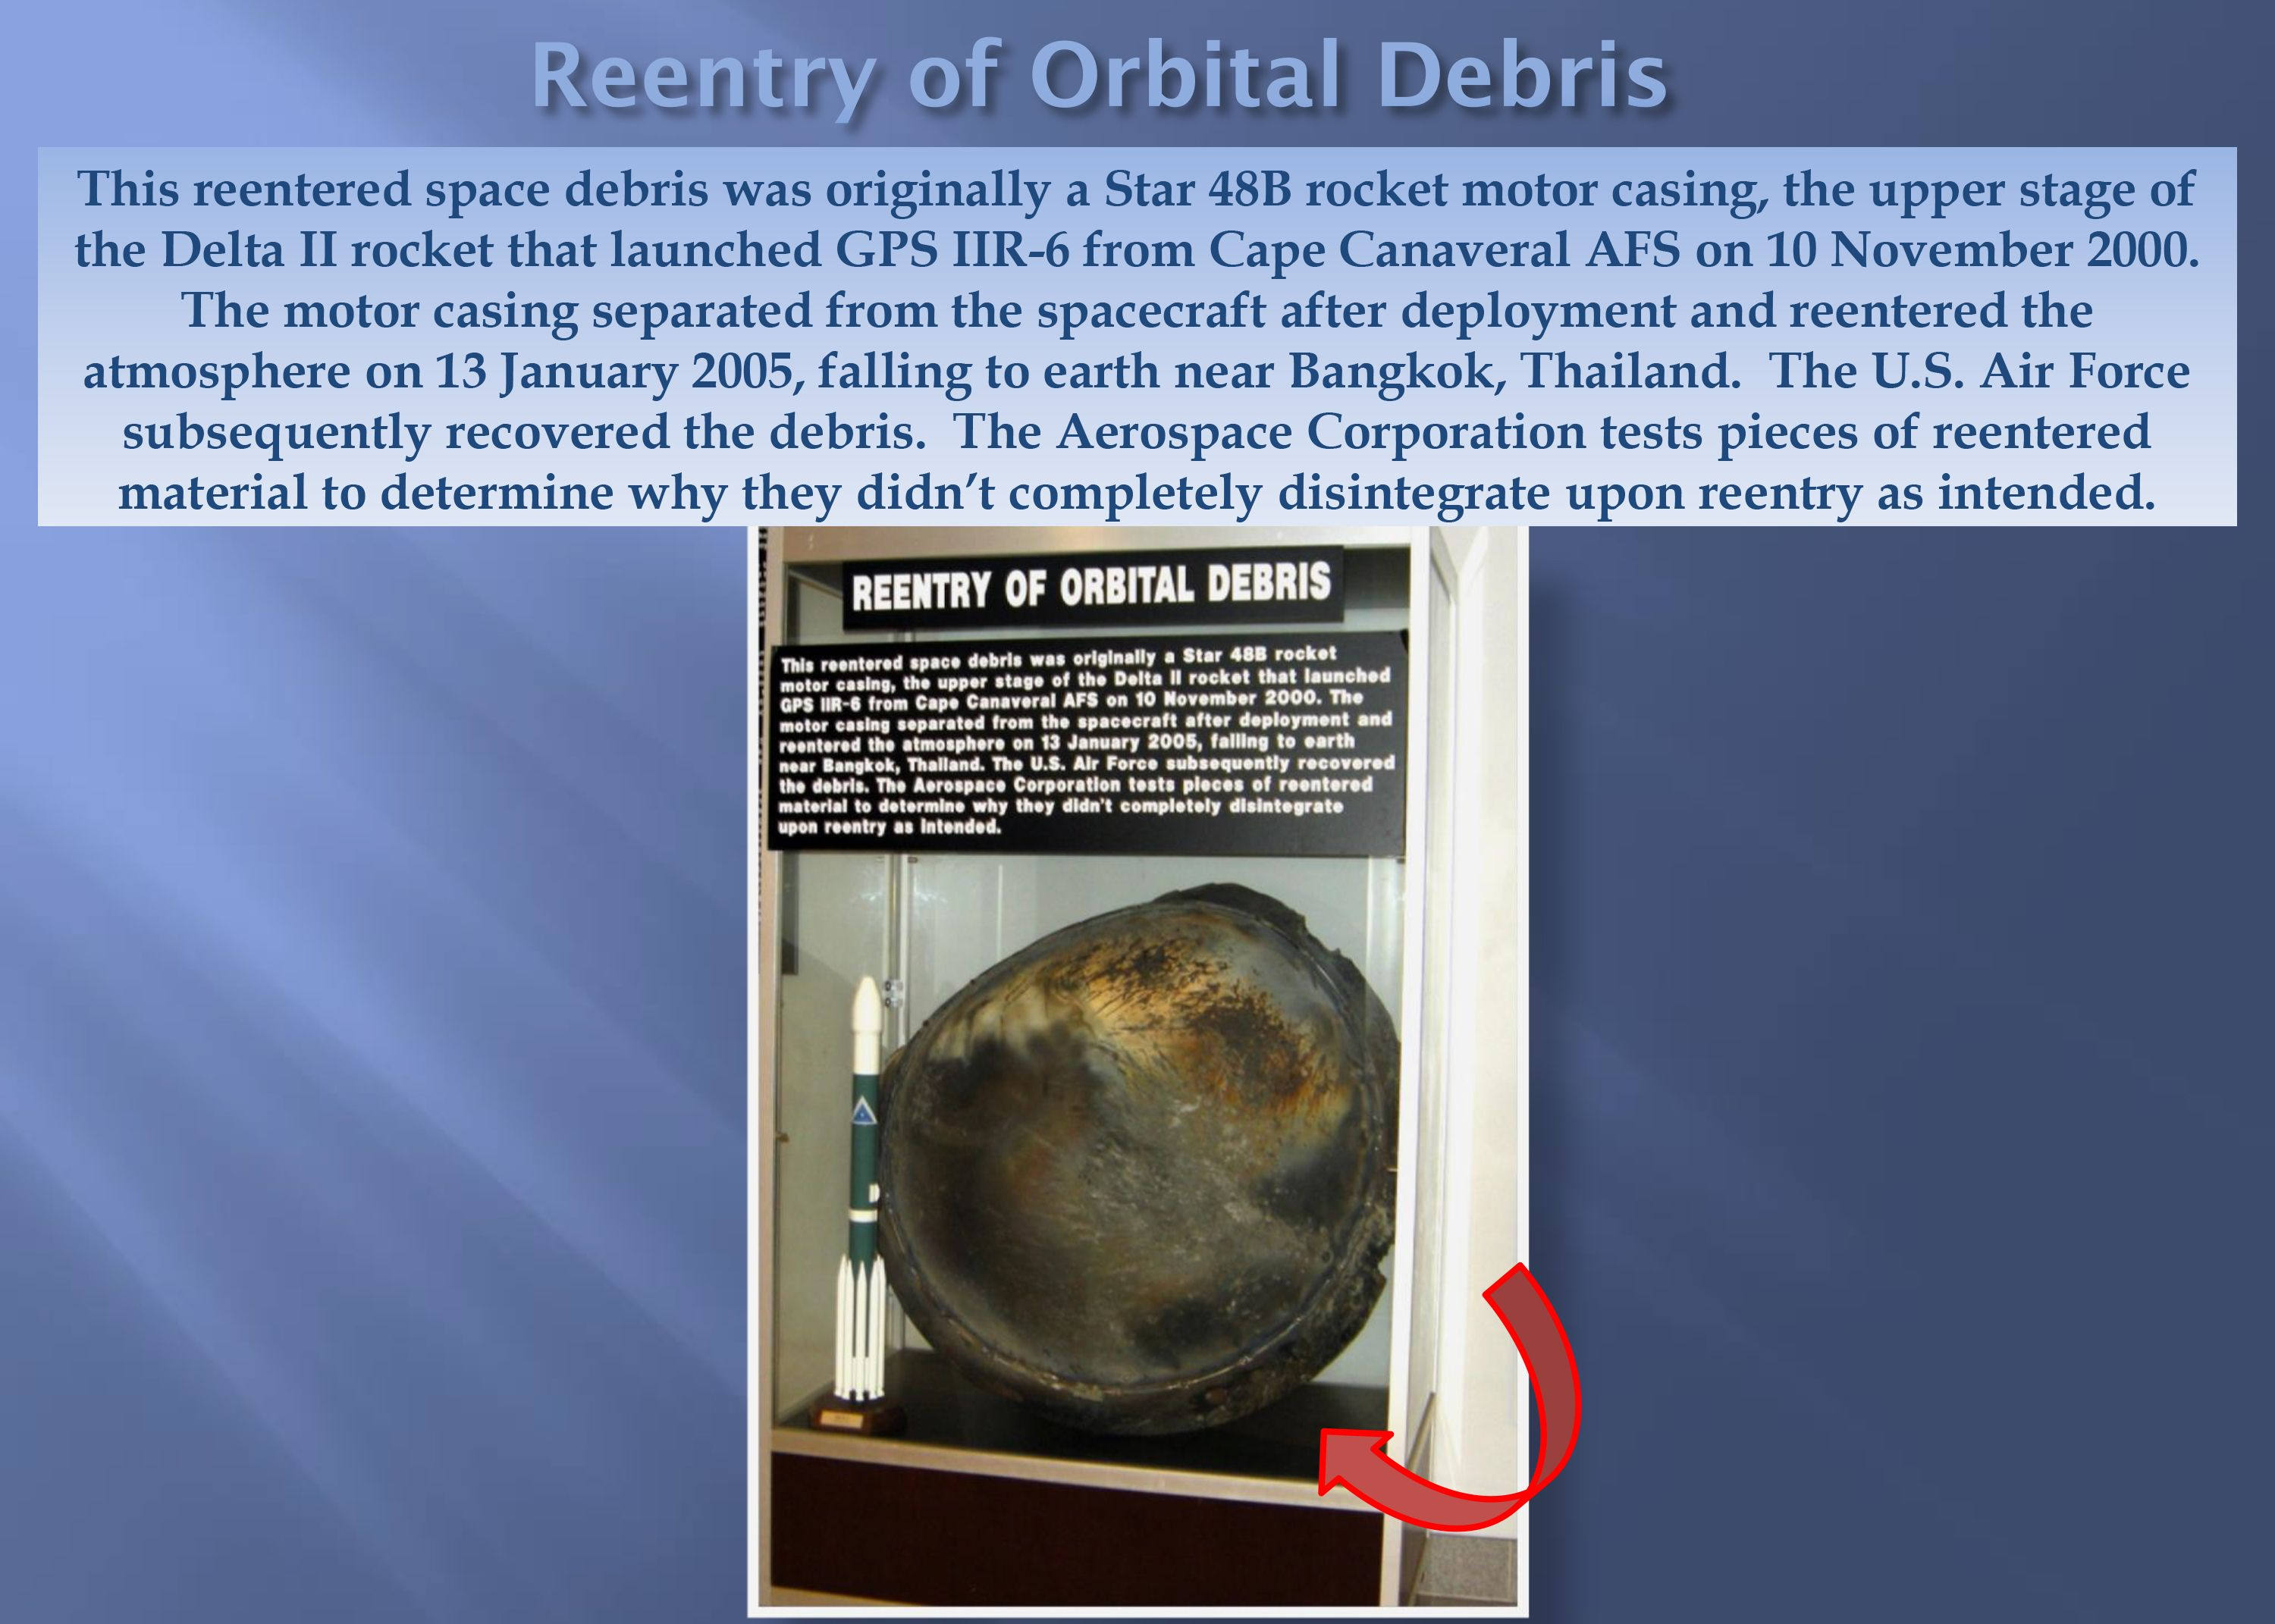 This reentered space debris was originally a Star 48B rocket motor casing, the upper stage of the Delta II rocket that launched GPS IIR-6 from Cape Canaveral AFS on 10 November 2000. The motor casing separated from the spacecraft after deployment and reentered the atmosphere on 13 January 2005, falling to earth near Bangkok, Thailand.  The U.S. Air Force subsequently recovered the debris.